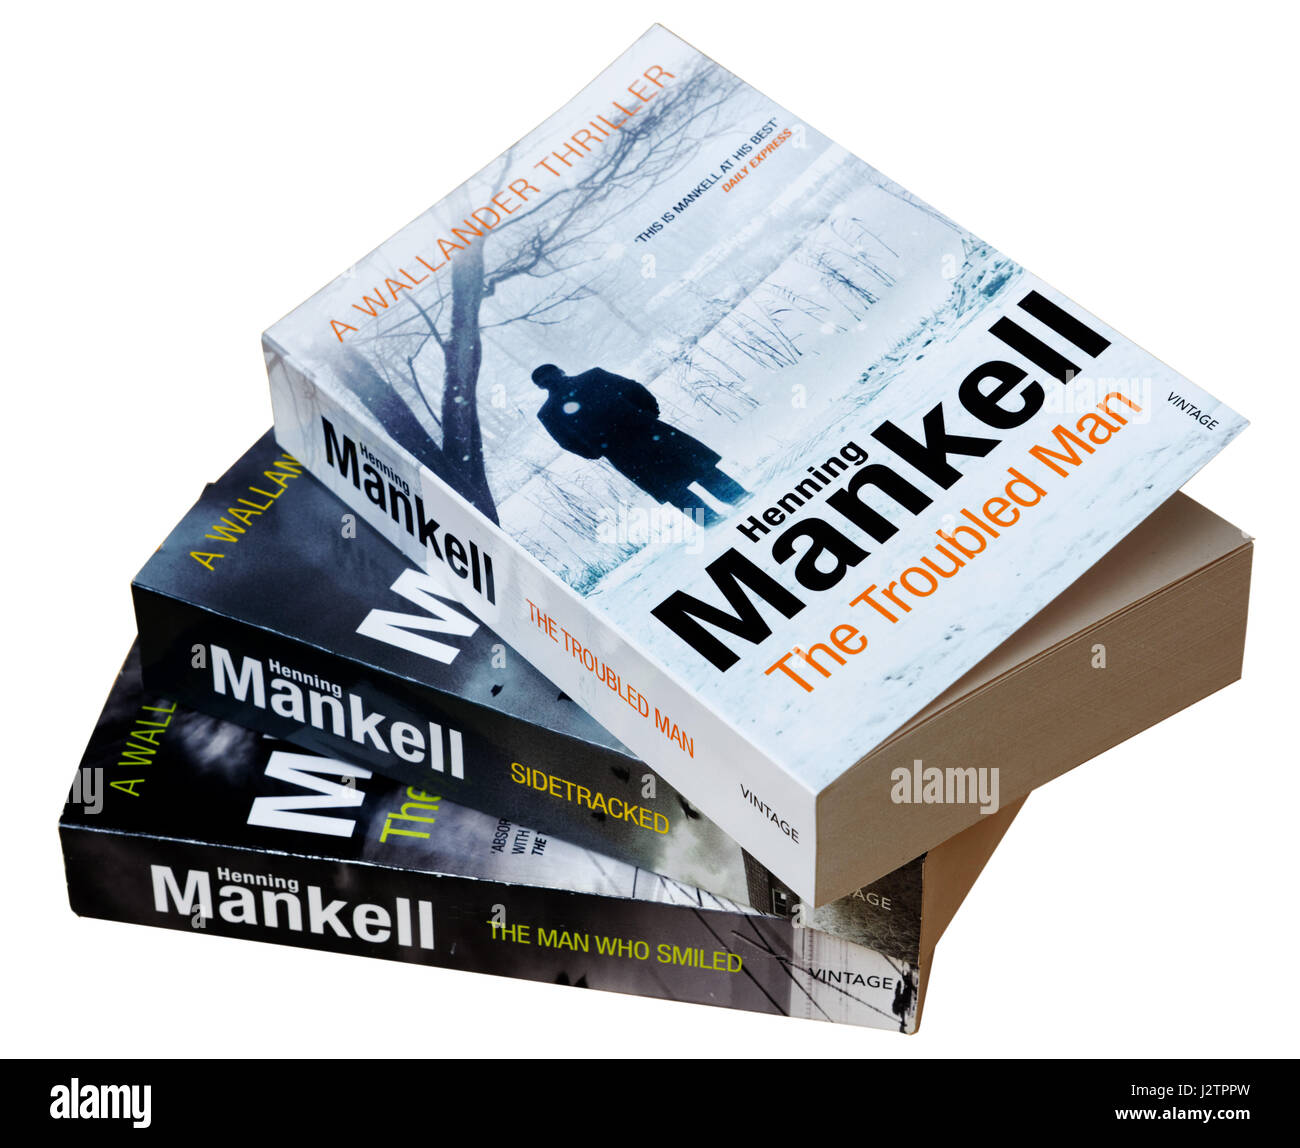 A selection of Henning Mankell detective Wallander books, including The Troubled Man, The Man Who Smiled and Sidetracked - Stock Image